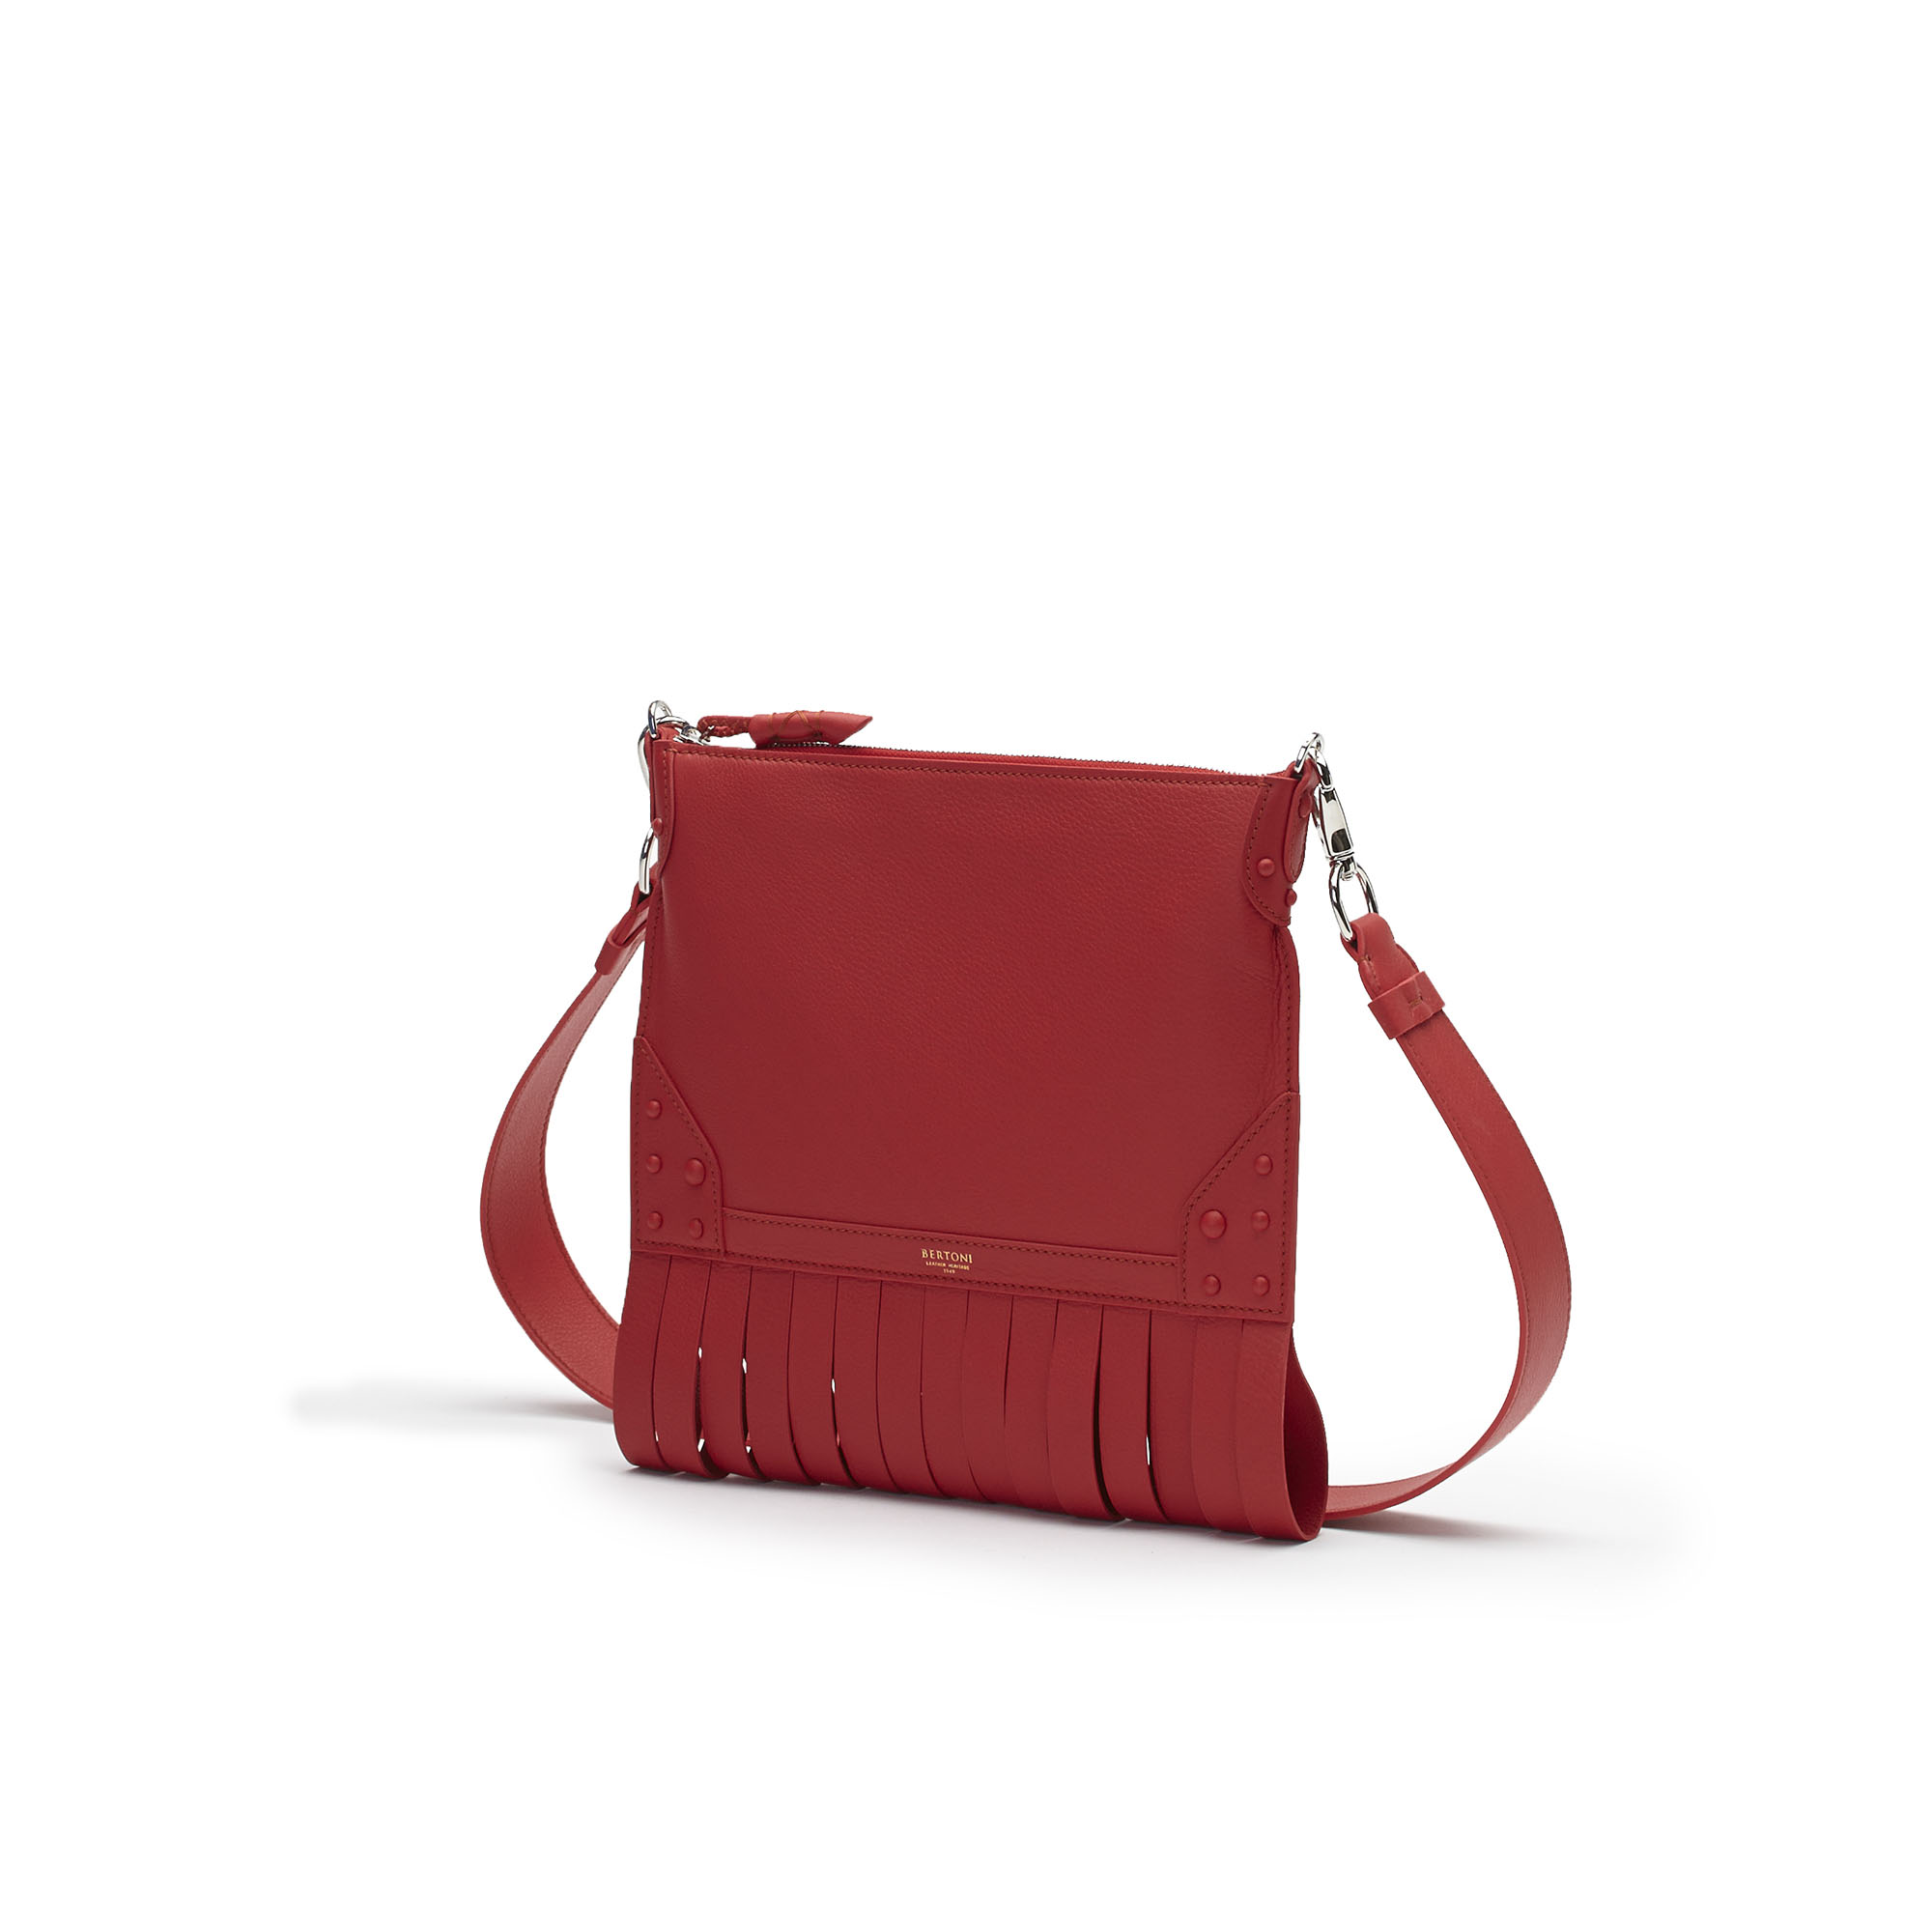 The red soft calf Franche Zip Pouch bag by Bertoni 1949 02